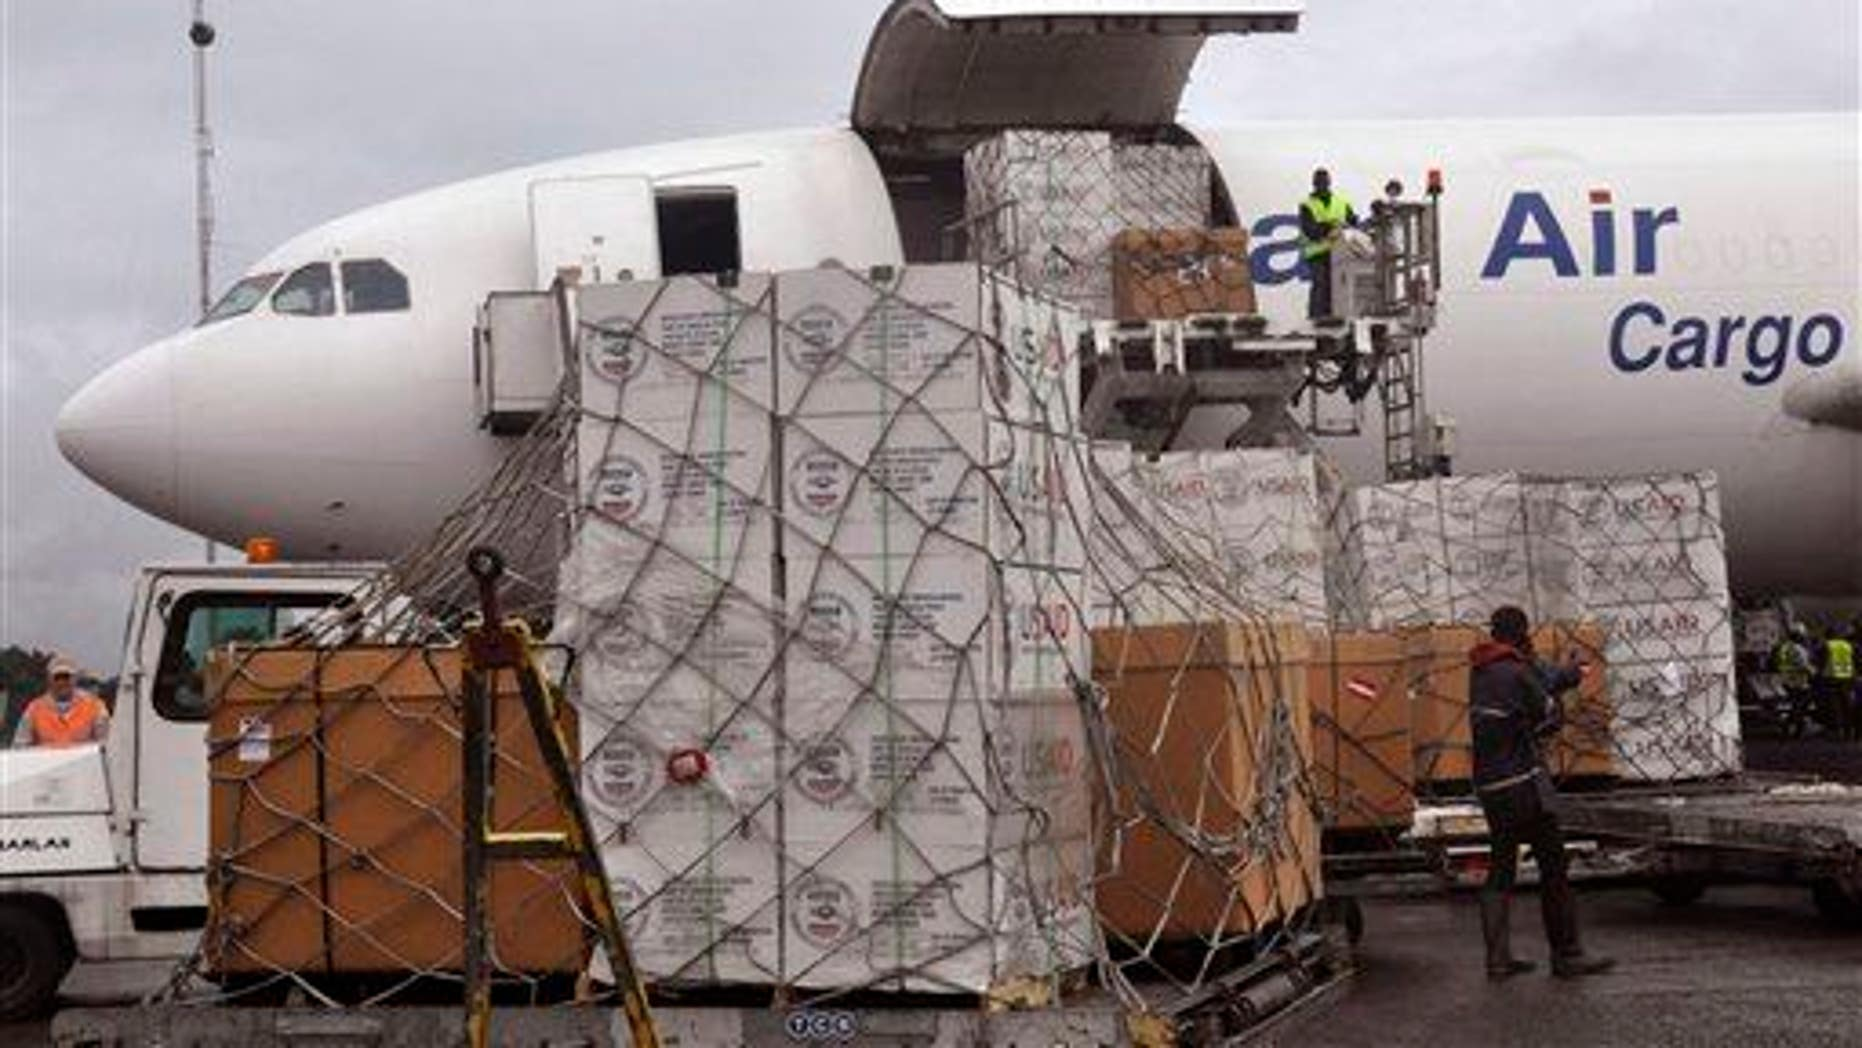 American Aid goods are offloaded from an airplane, to be used in the fight against the Ebola virus spreading in the city of  Monrovia, Liberia, Sunday, Aug. 24, 2014.